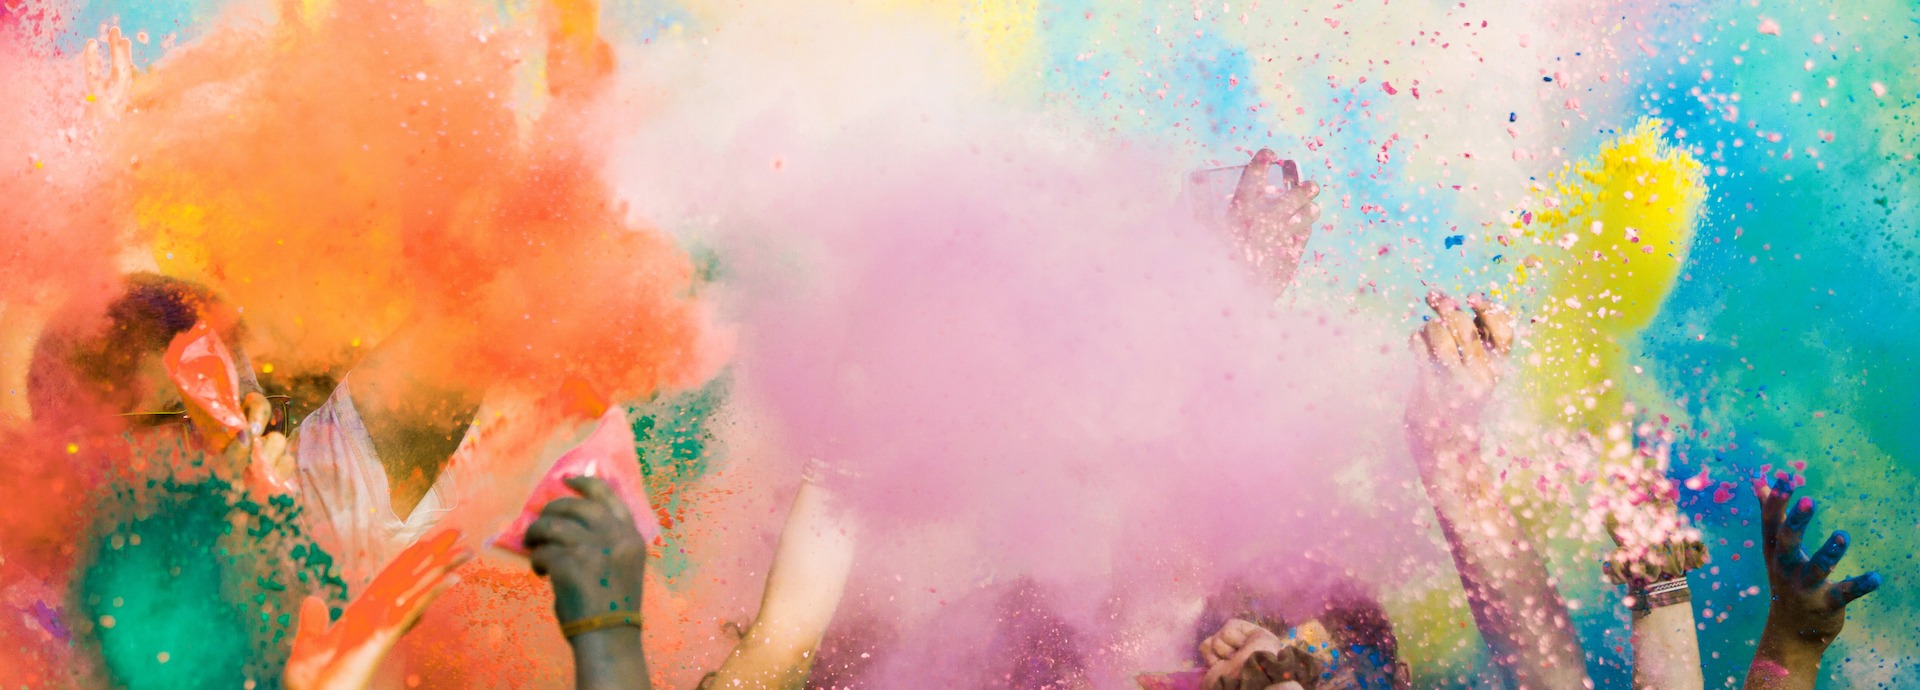 Diverse hands throwing paint bombs